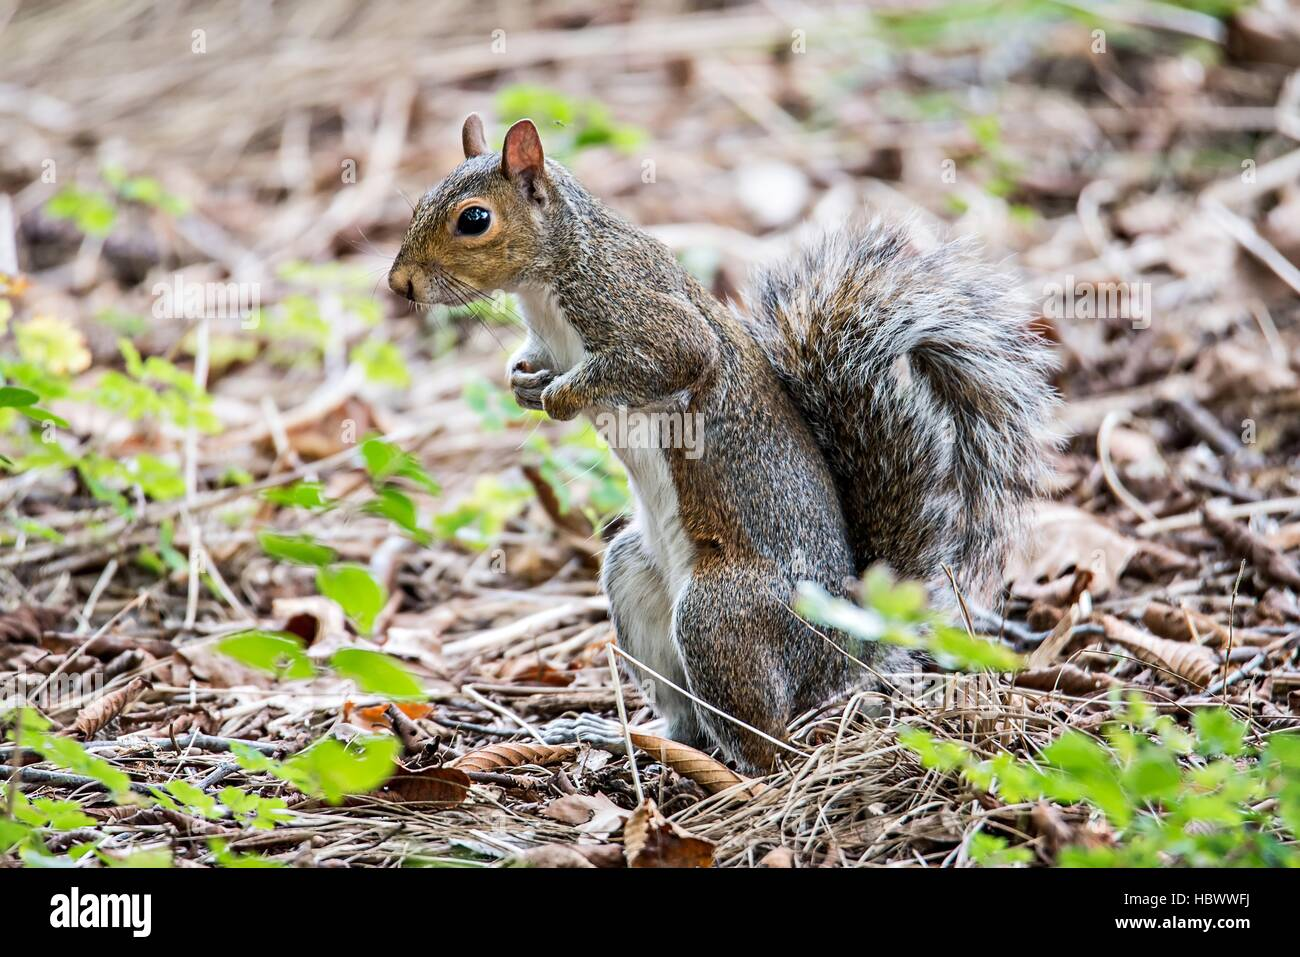 omnivorous rodent squirrel on ground - Stock Image